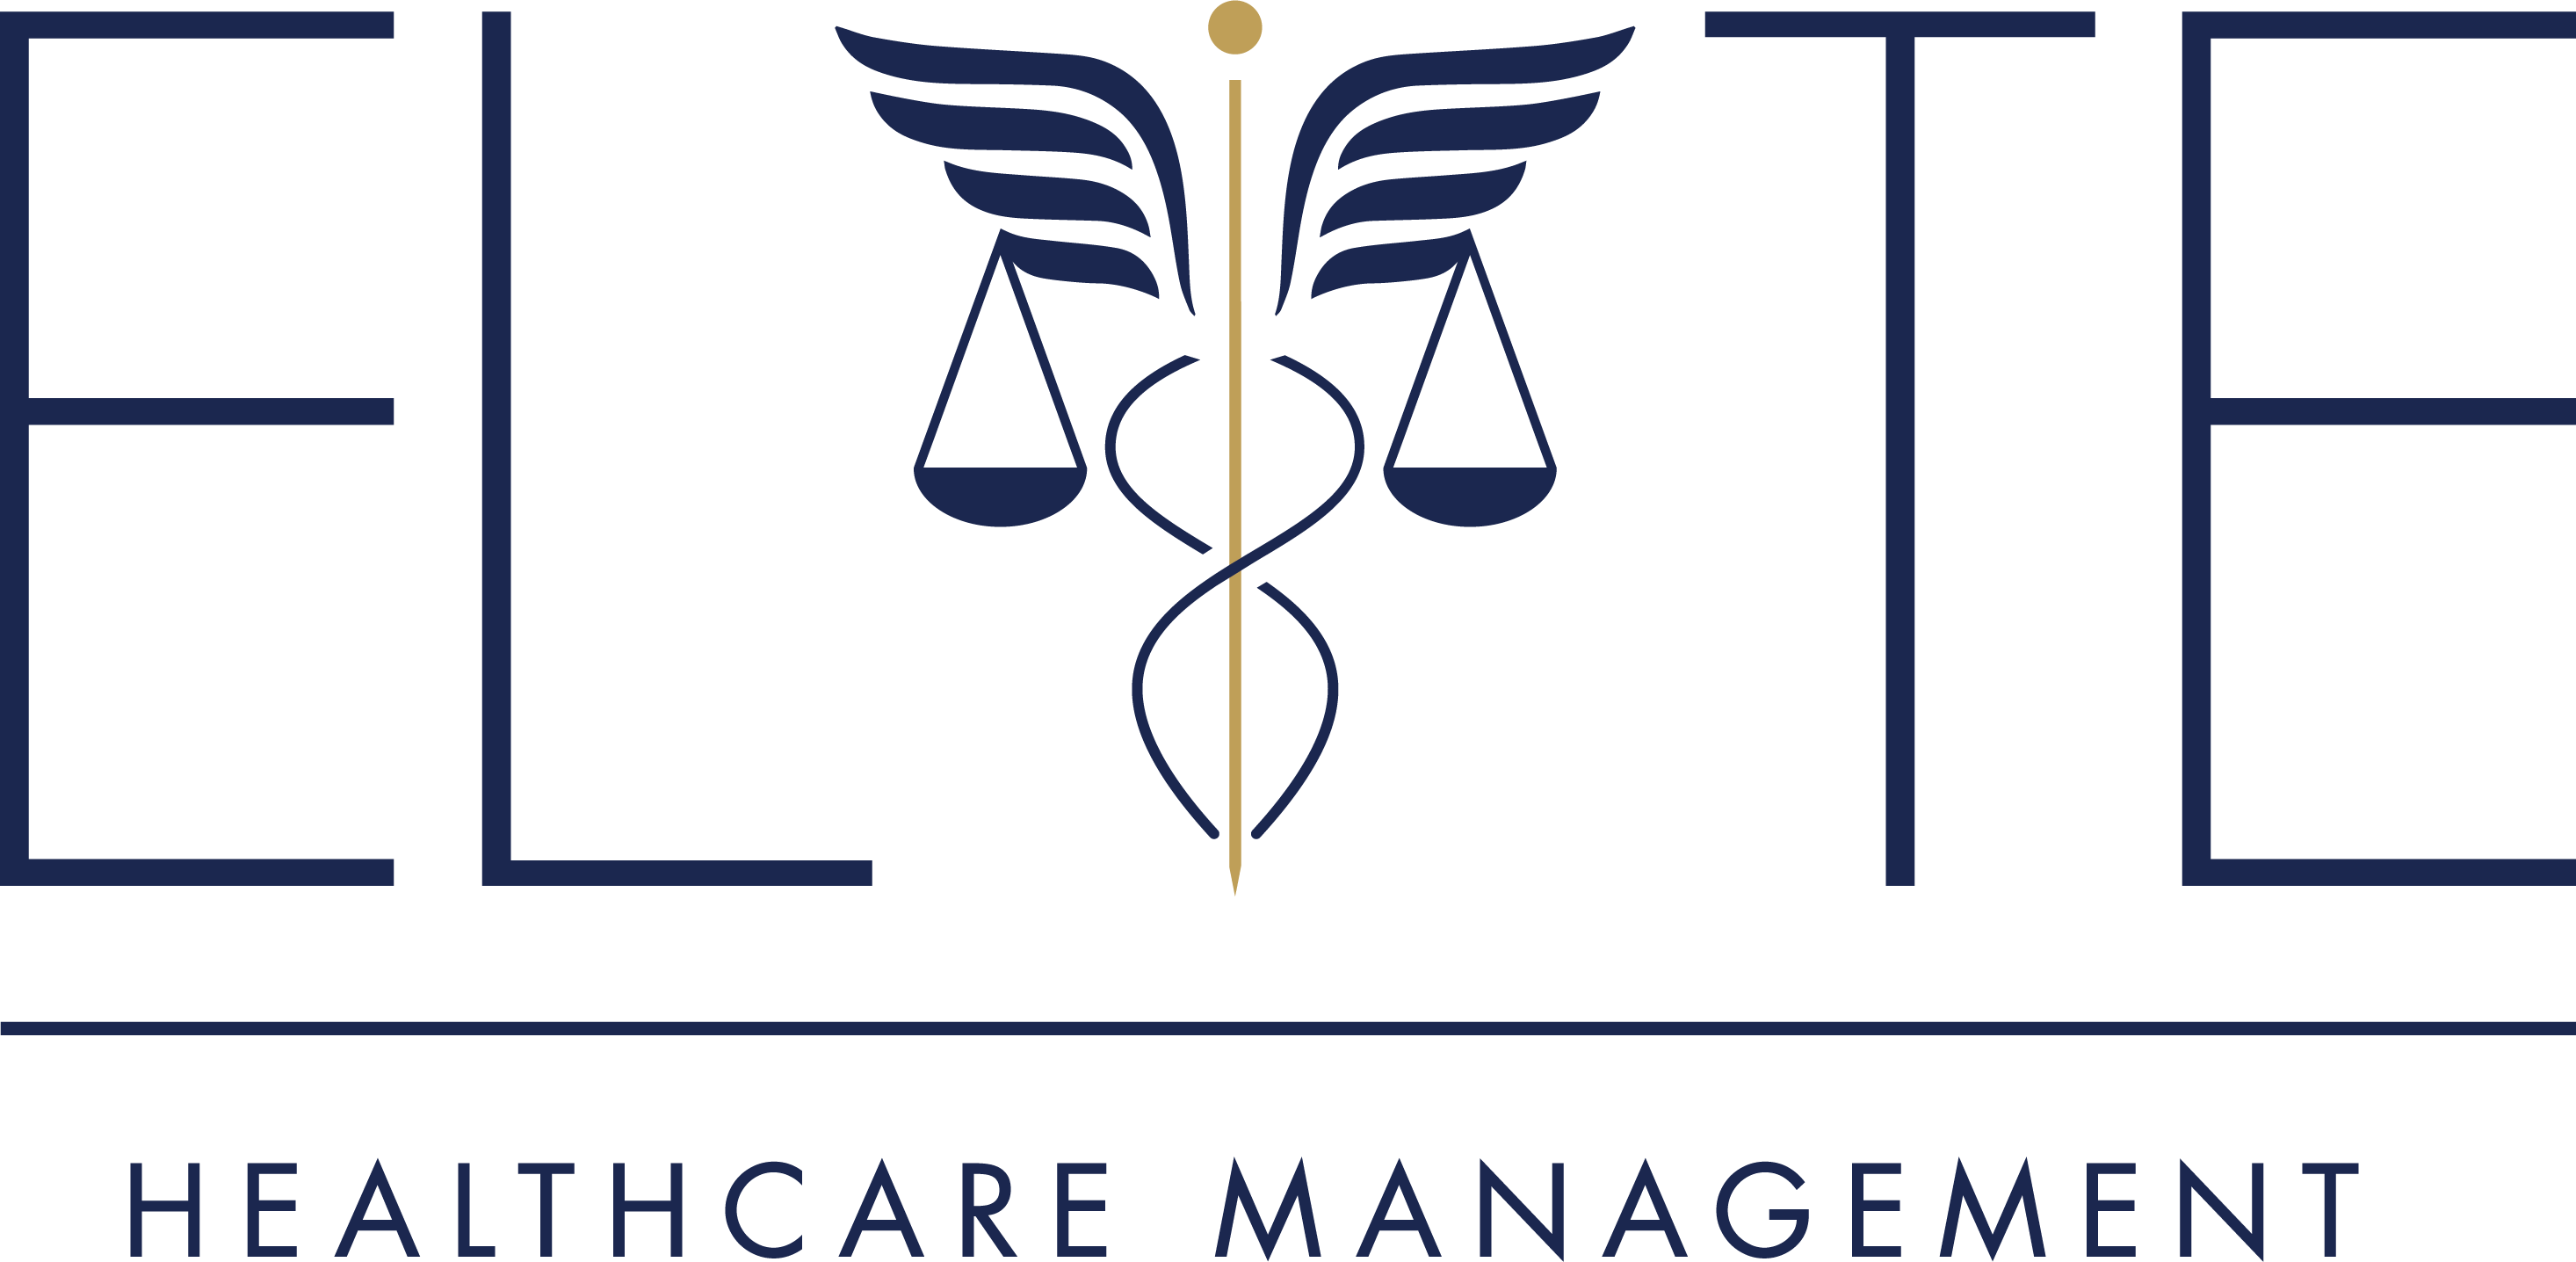 ELITE HEALTHCARE MANAGEMENT